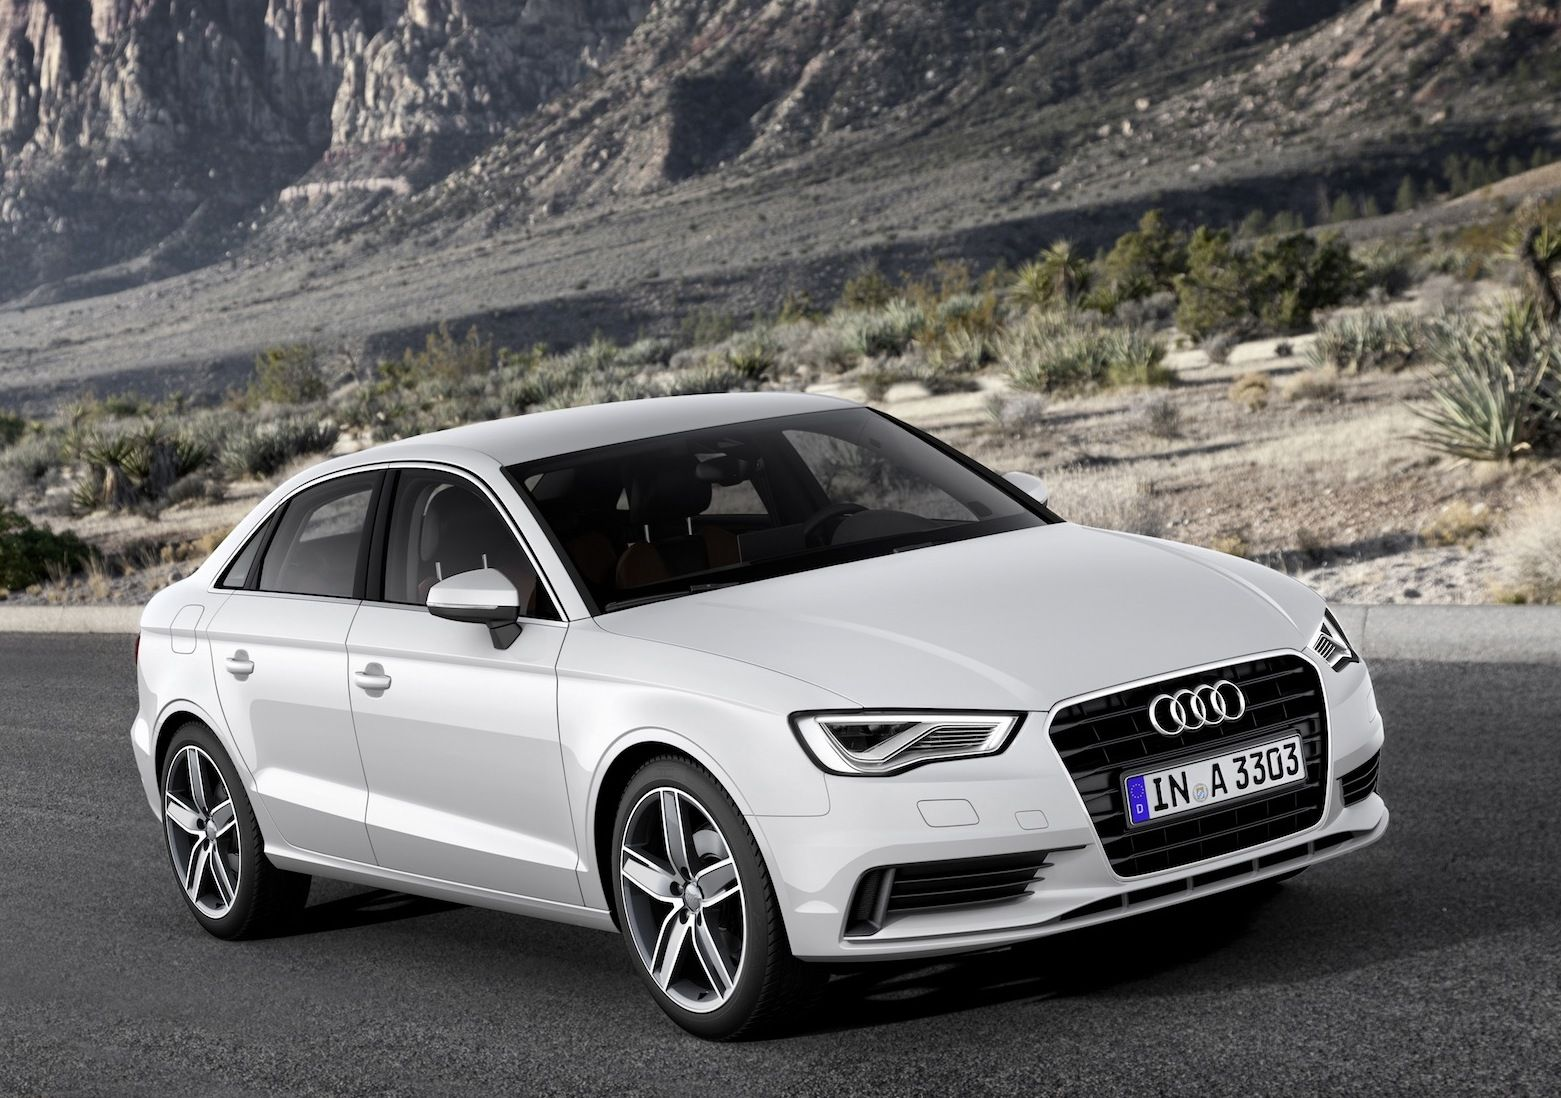 Pin by Helen Burch on Cars Audi a3 sportback, Audi a3